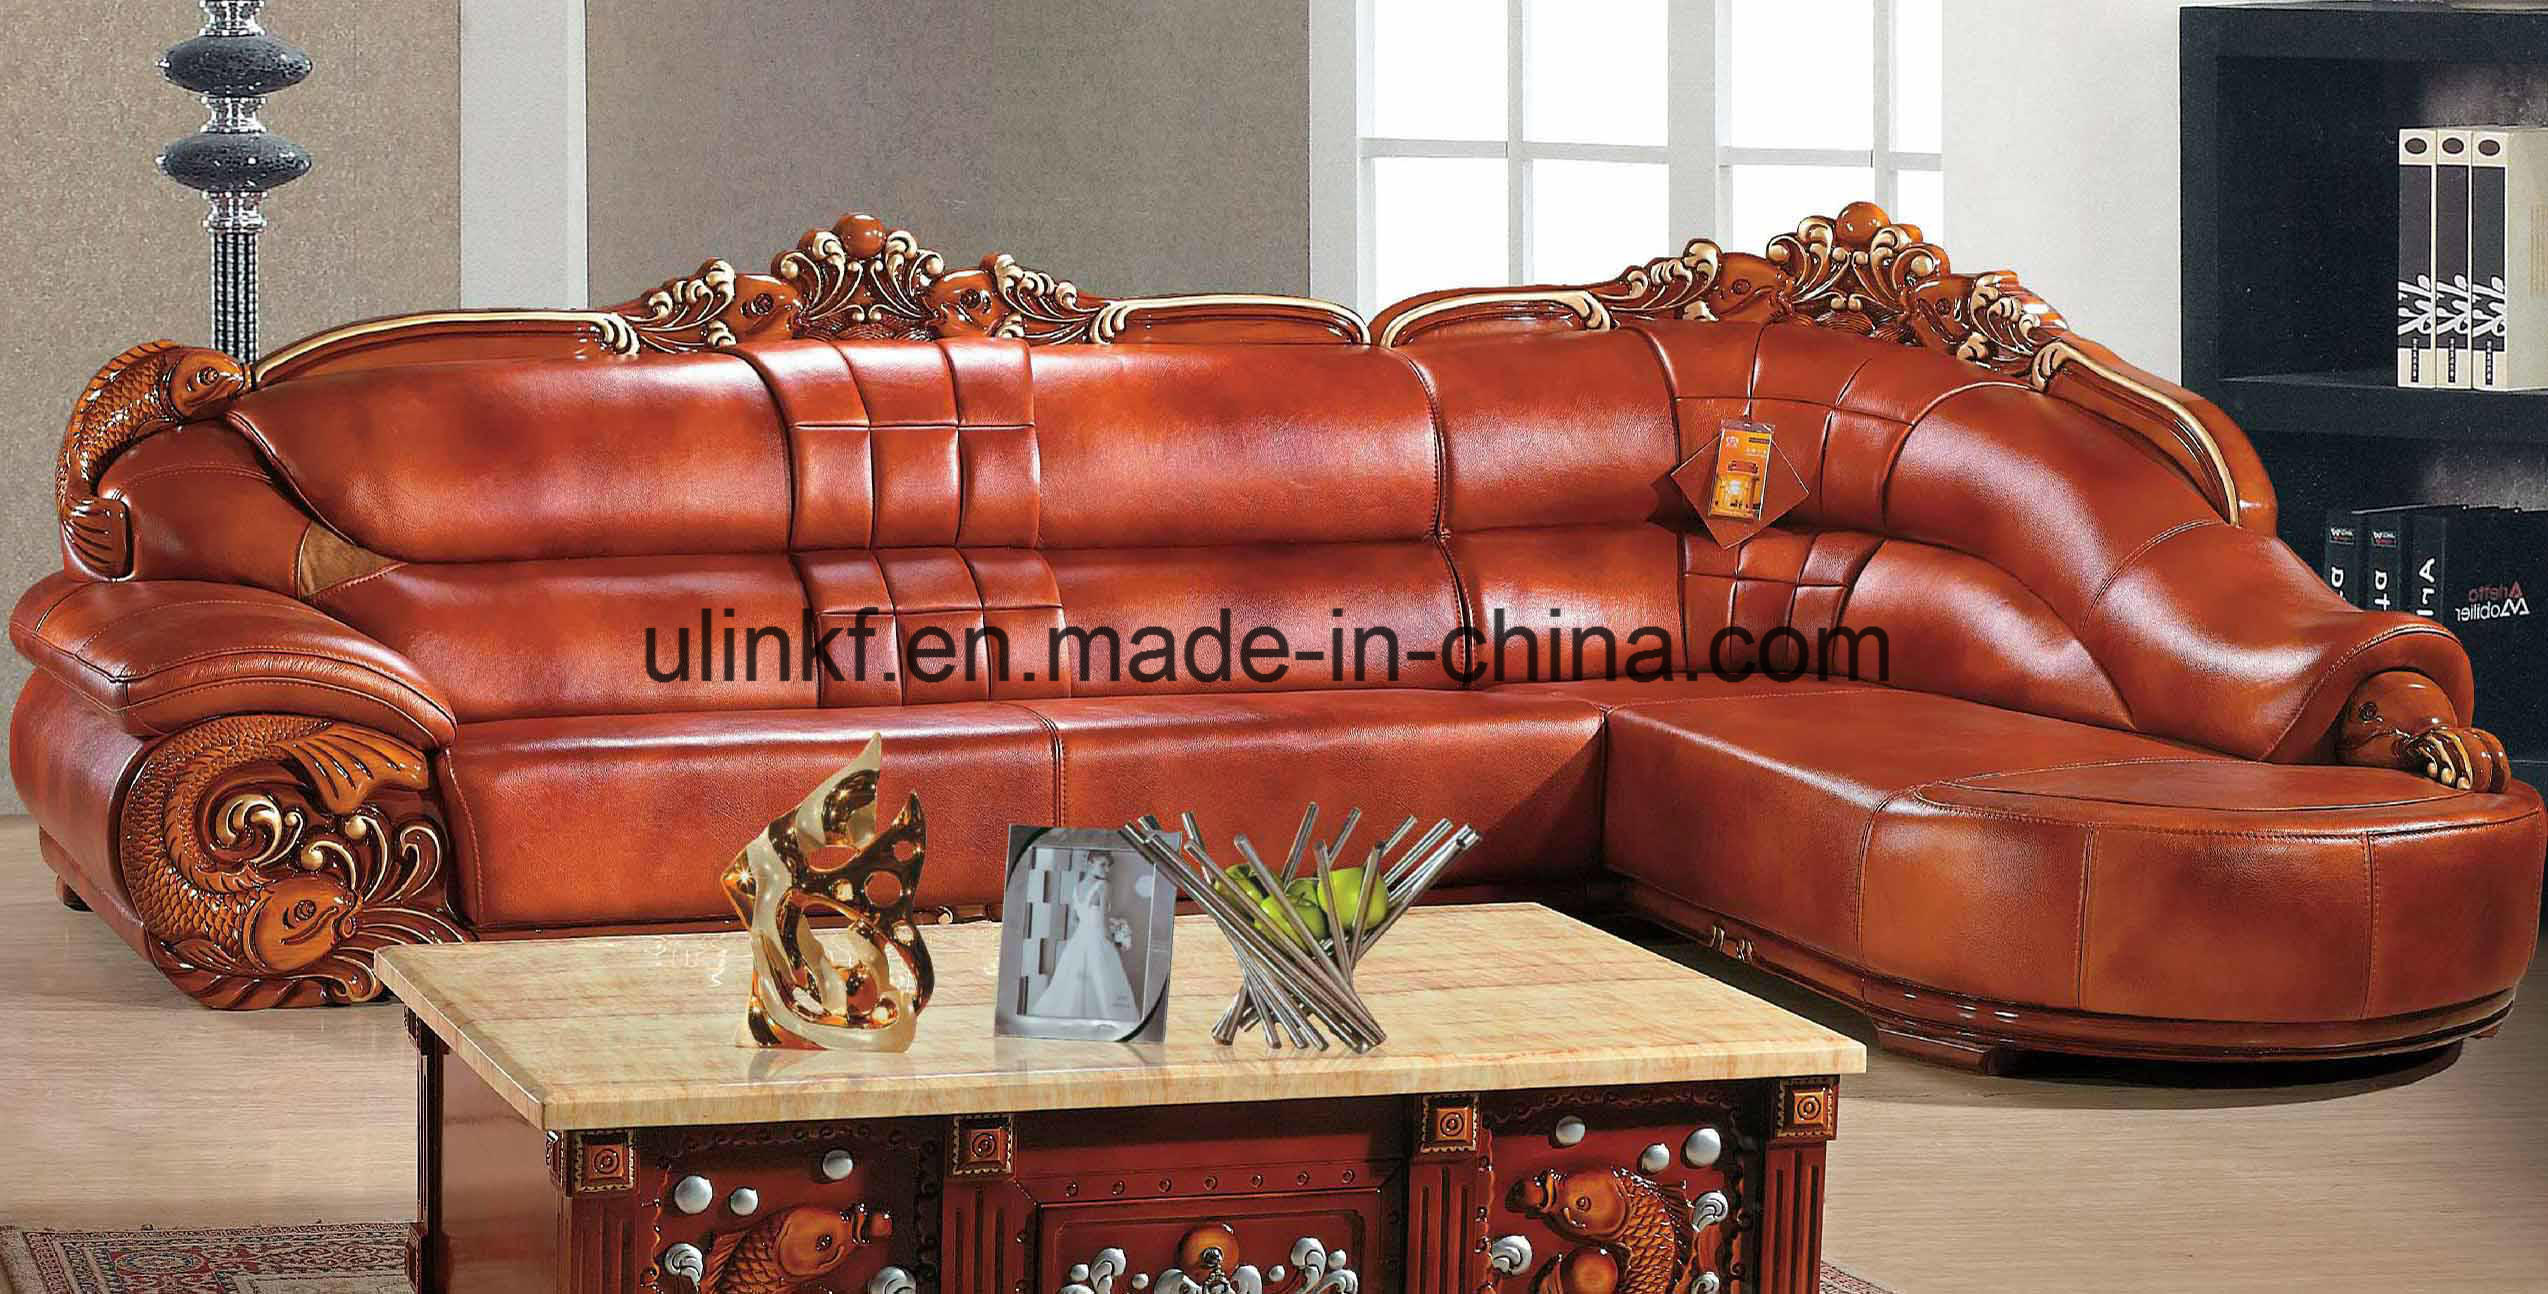 China Hot Sale European Style Classic Leather Sofa (UL NSC083)   China Leather  Sofa, Classic Sofa